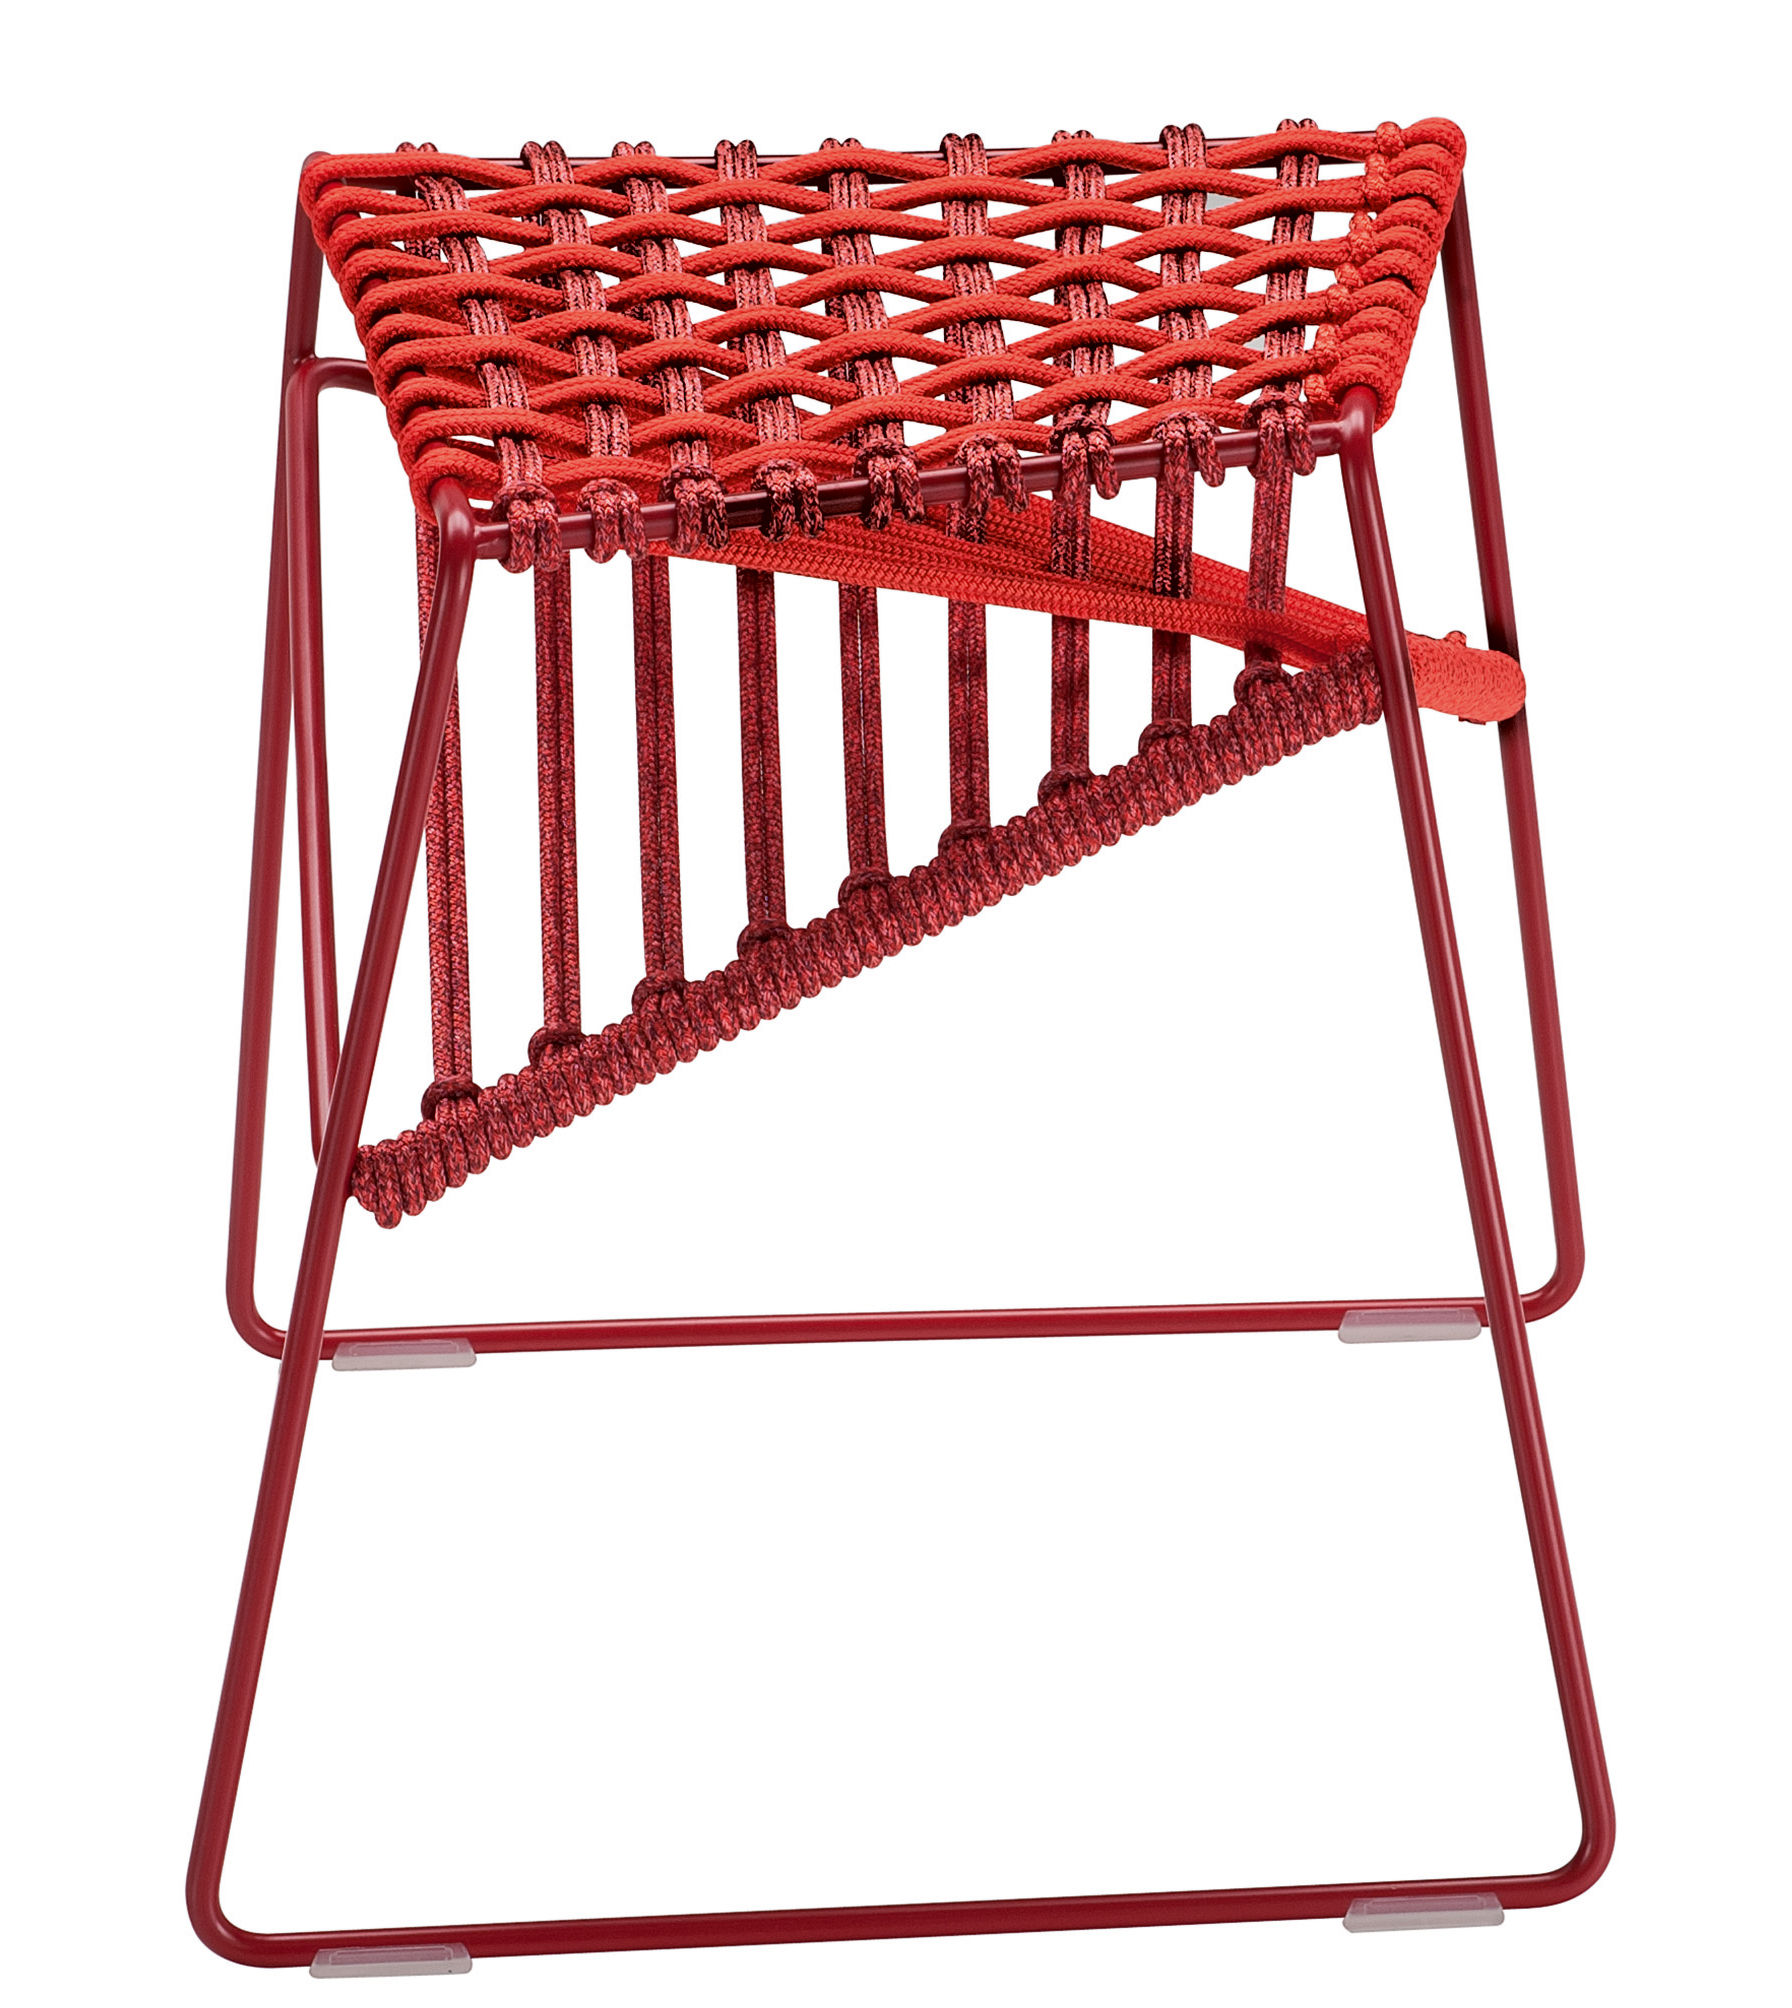 Furniture - Stools - Twist Stool by Zanotta - Red / burgundy - Polyester, Varnished steel